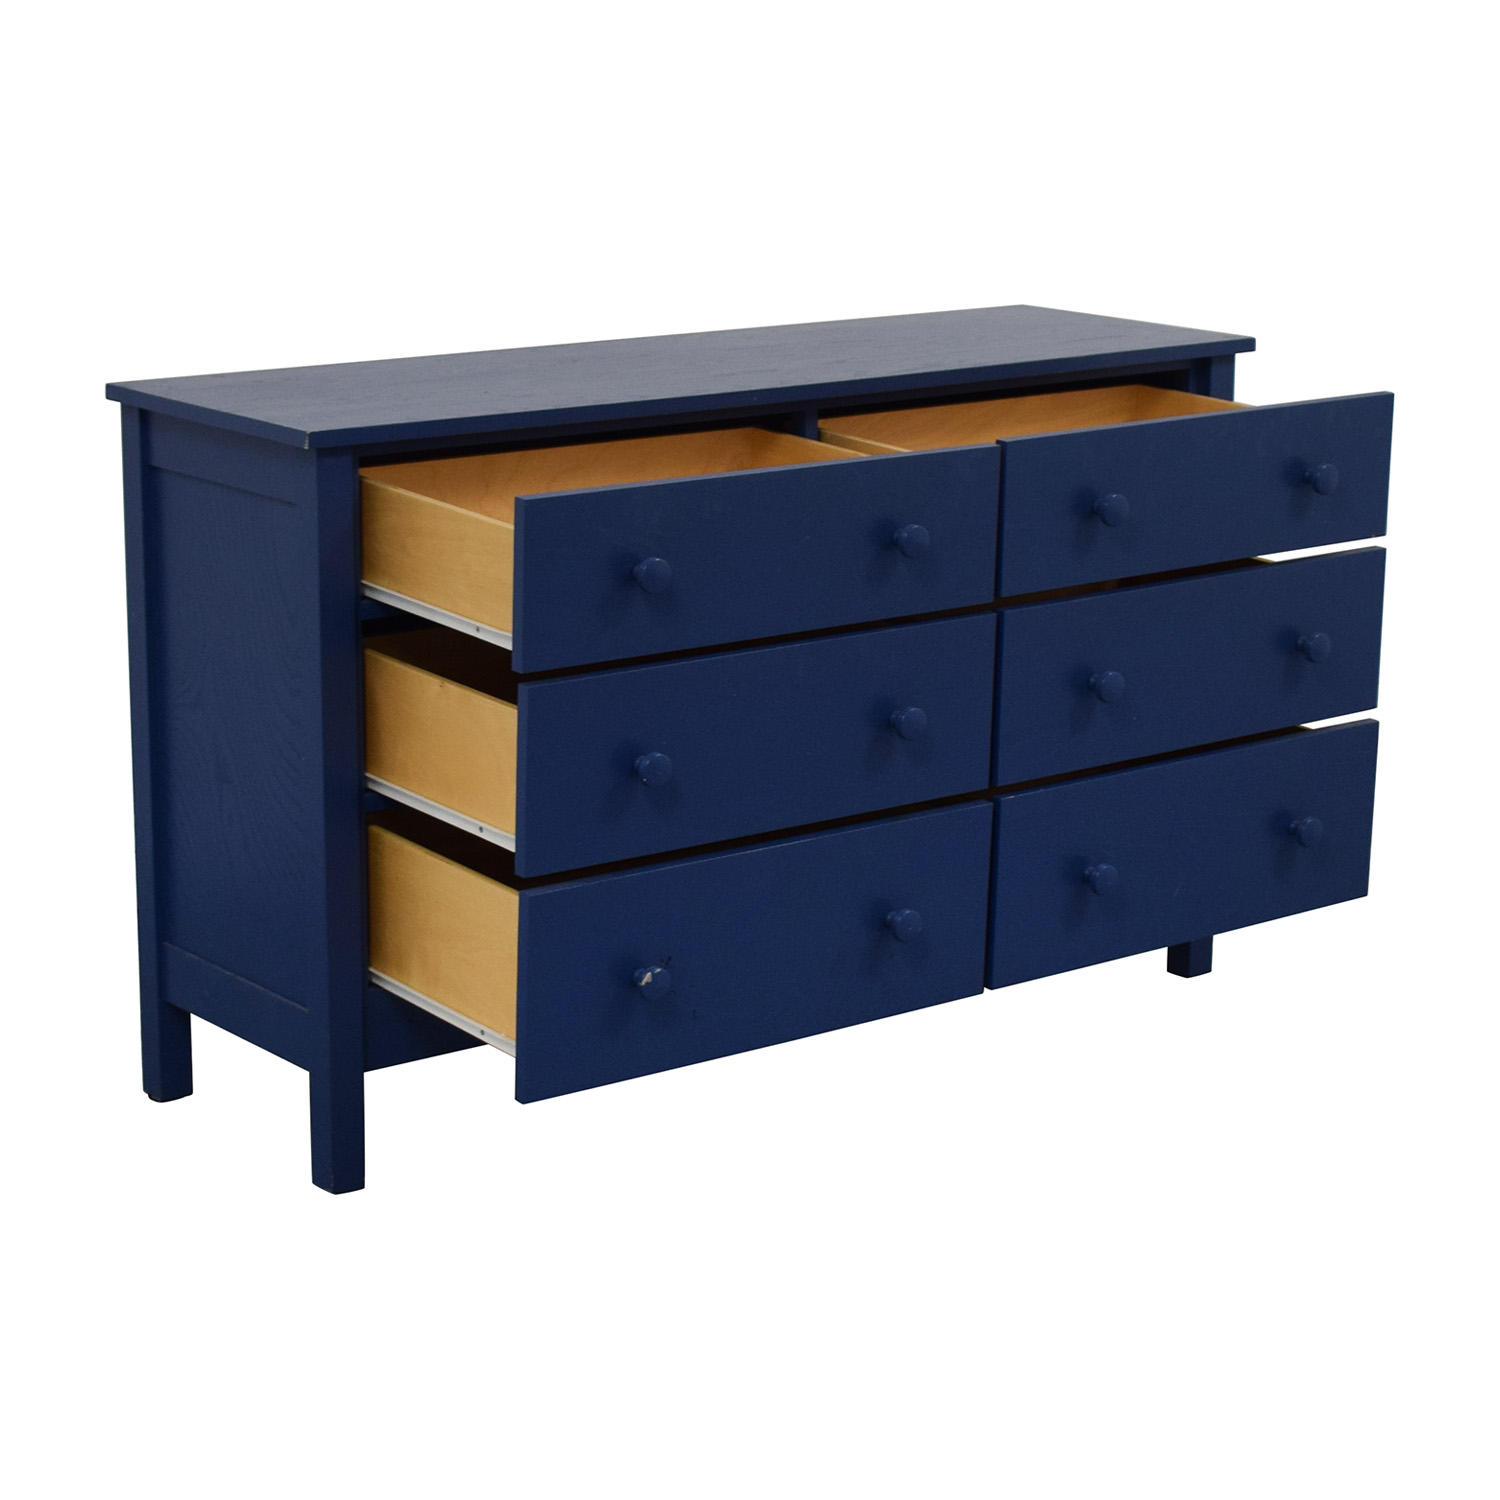 Spectra Wood Blue Six-Drawer Dresser Dressers